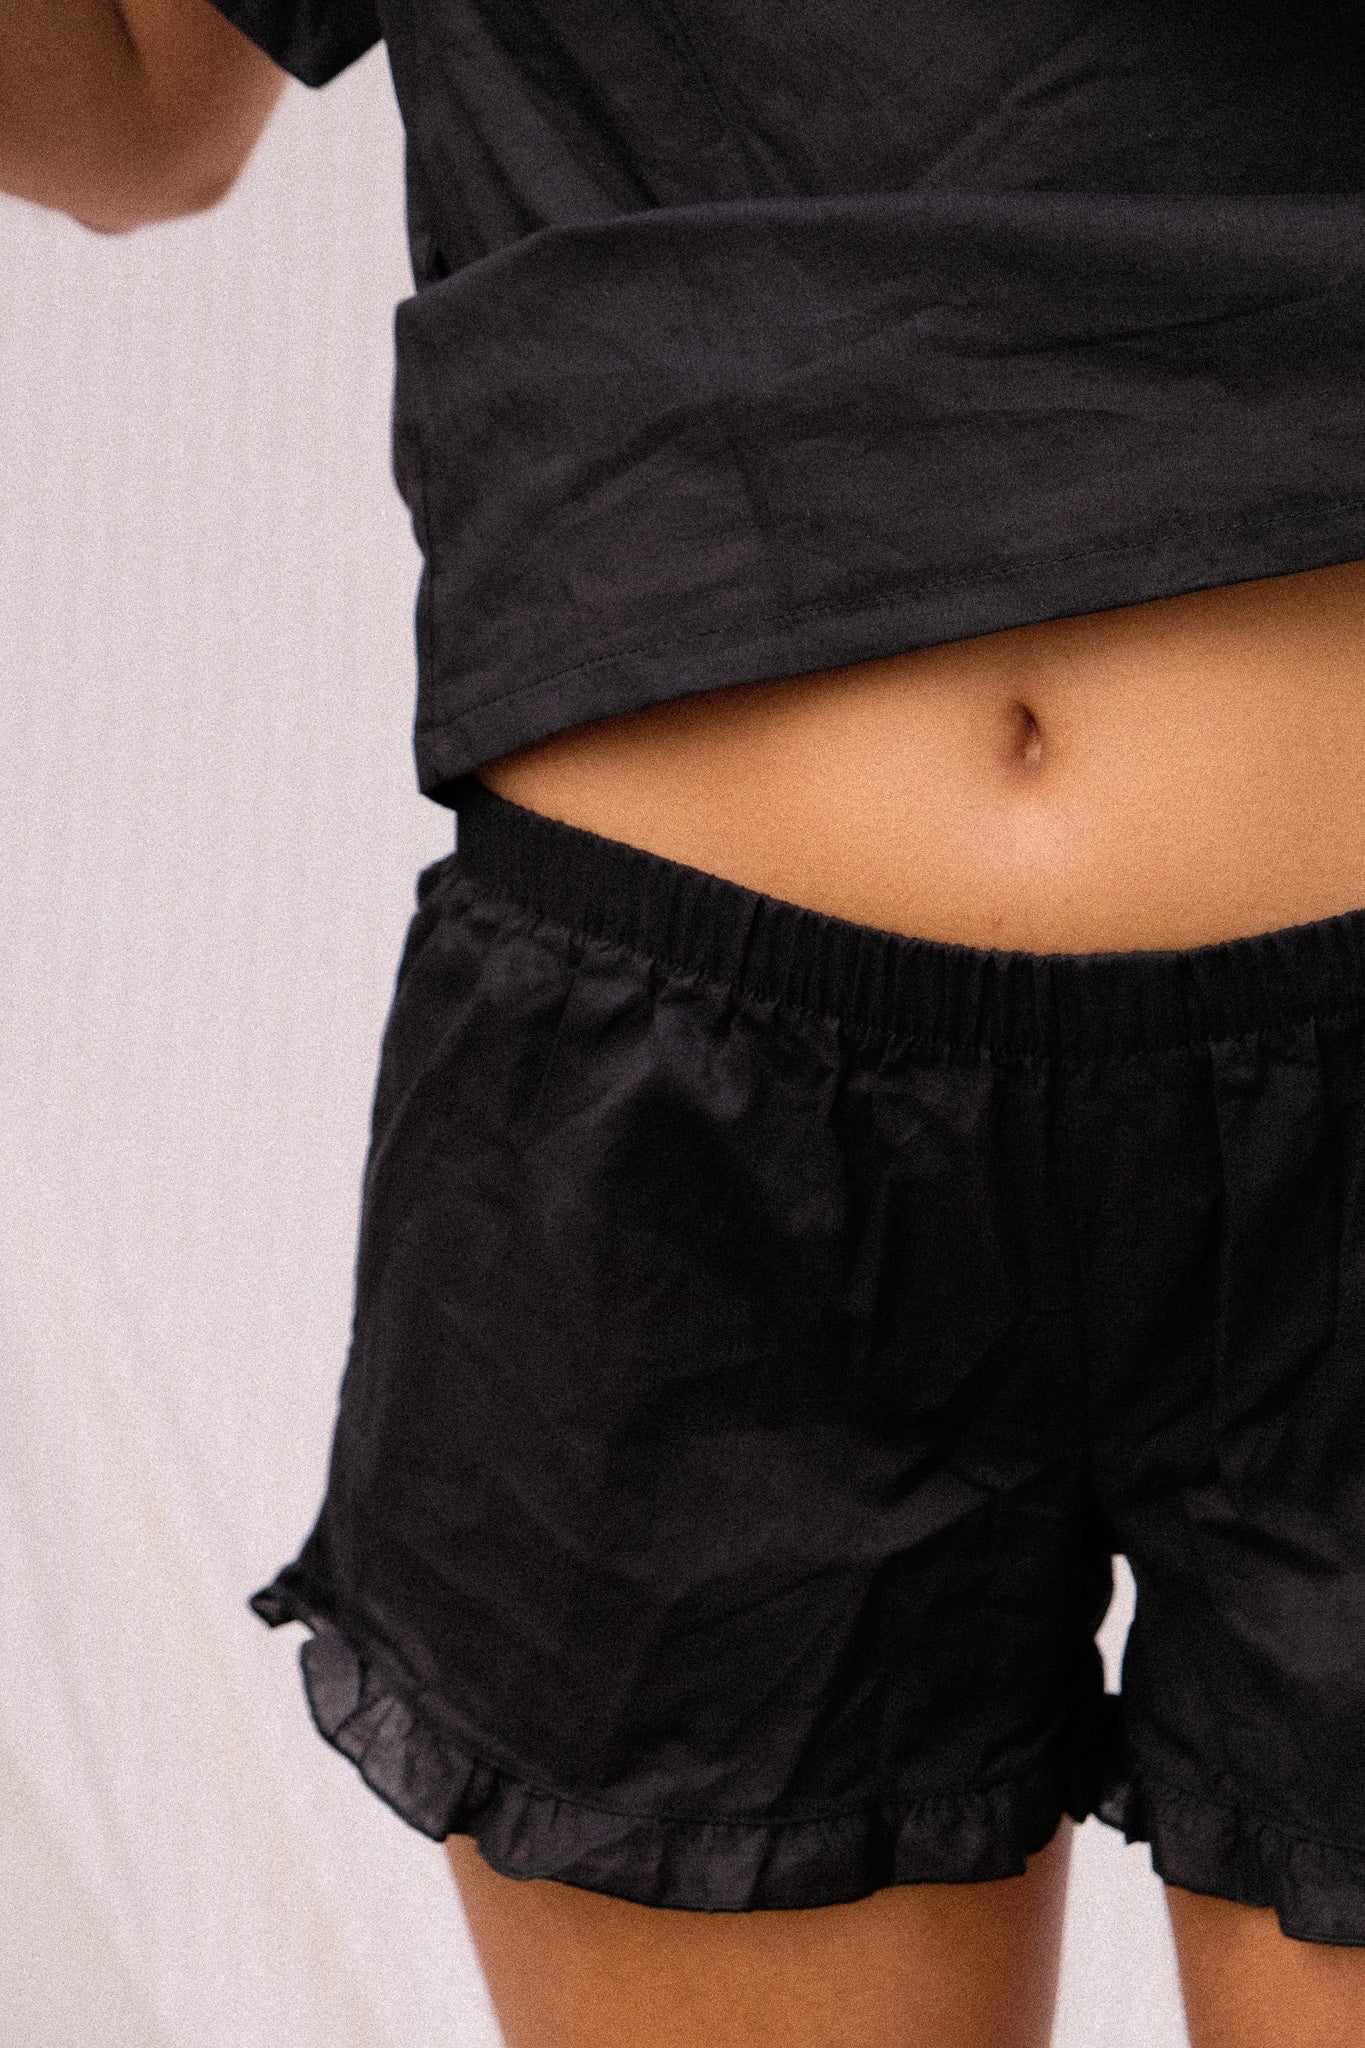 A women wearing a black short pijama.